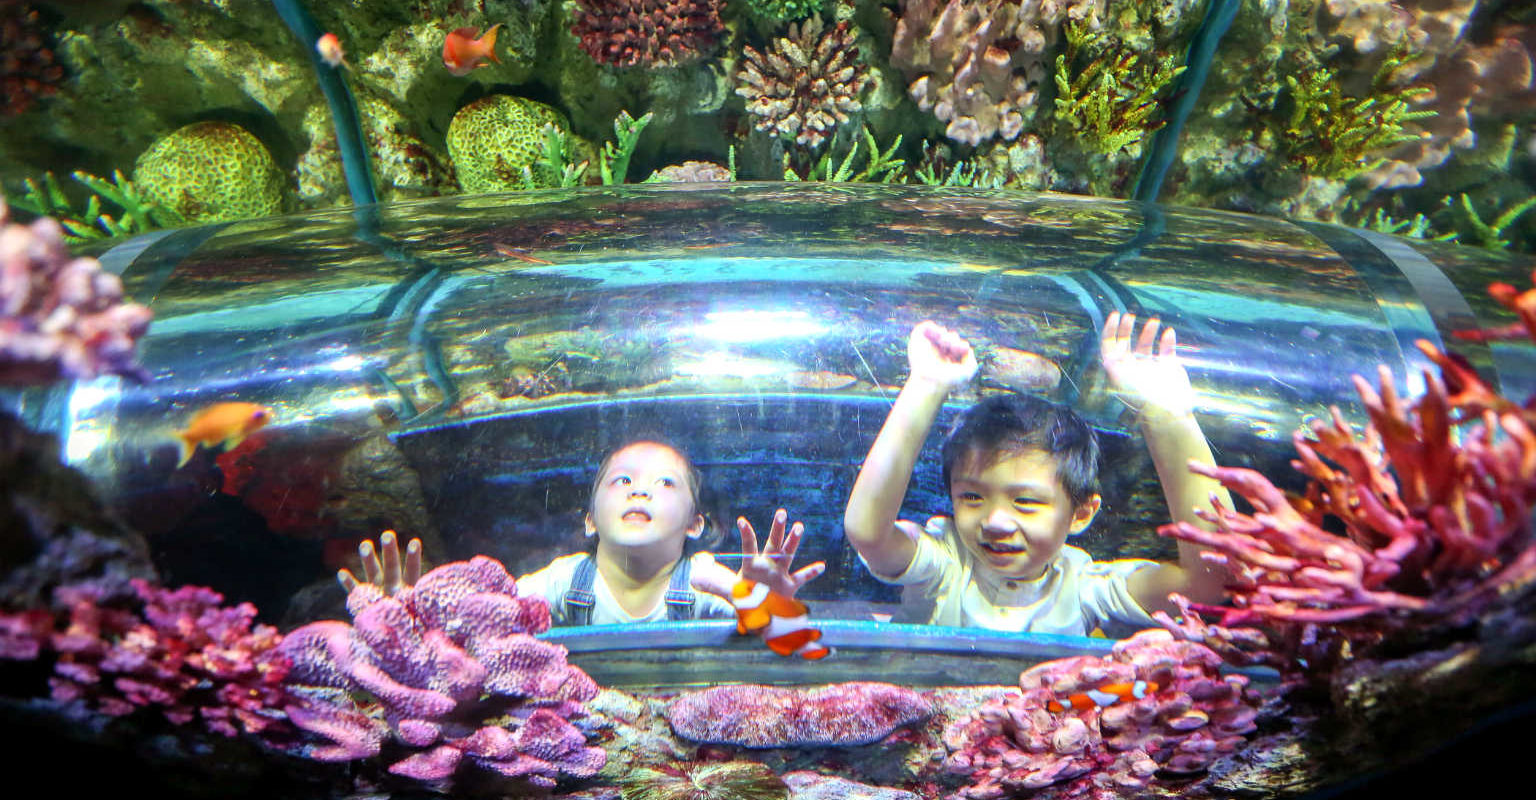 Sea Life, kinderen in aquarium, recreatie met familie in Bangkok